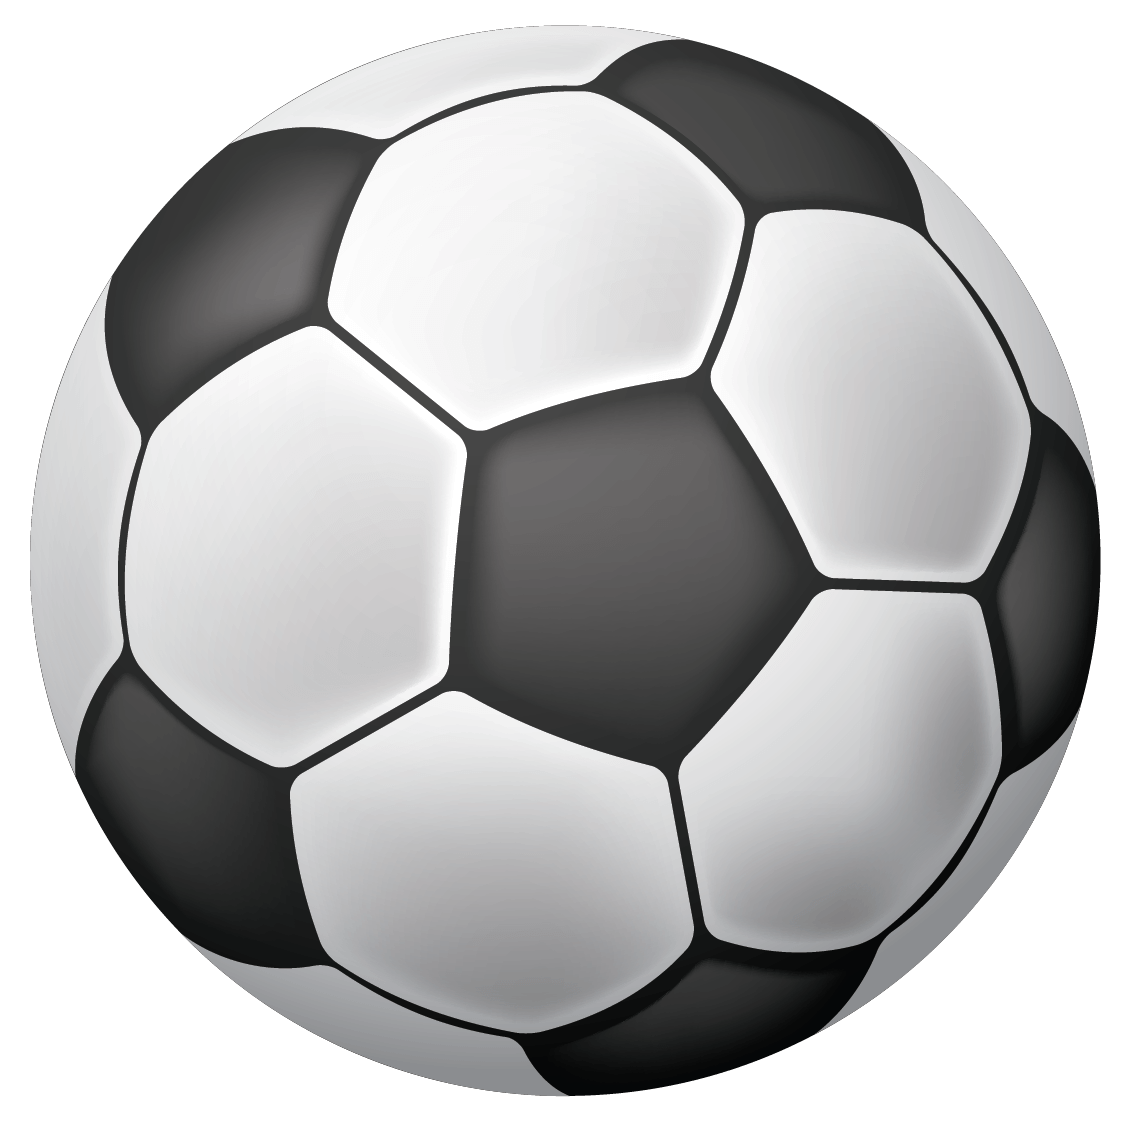 sphere real-life example football